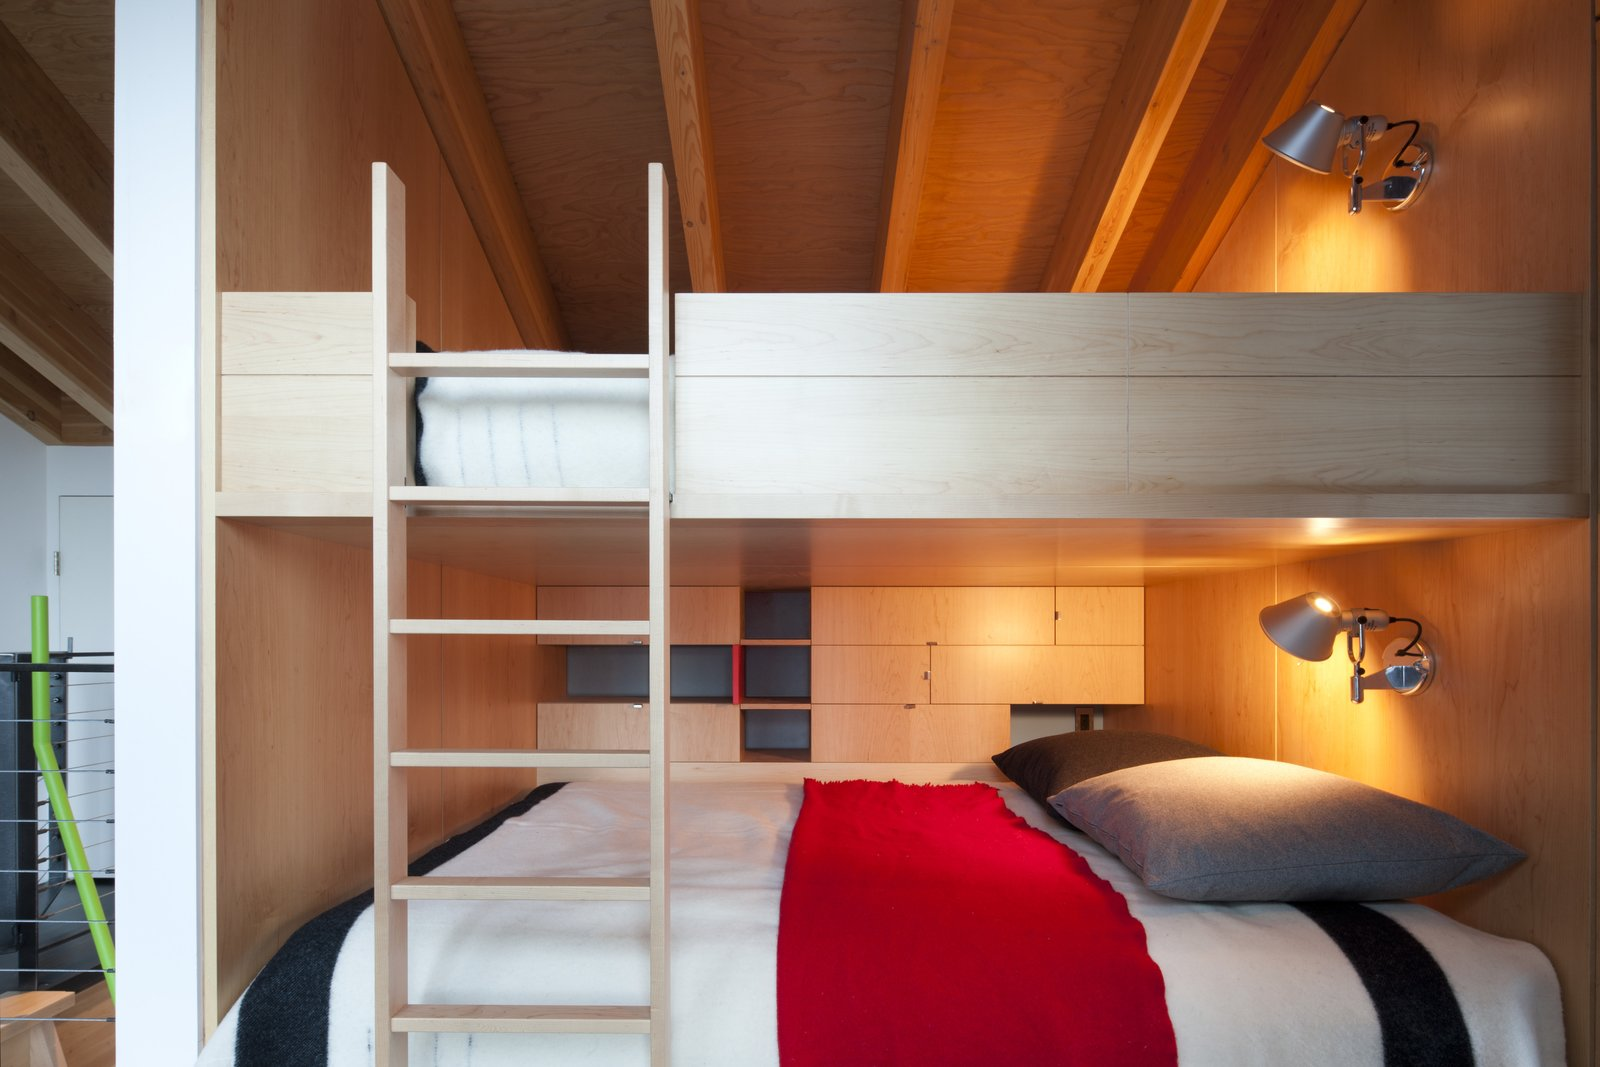 Bedroom, Bunks, and Wall Lighting  Best Photos from Kicking Horse Residence